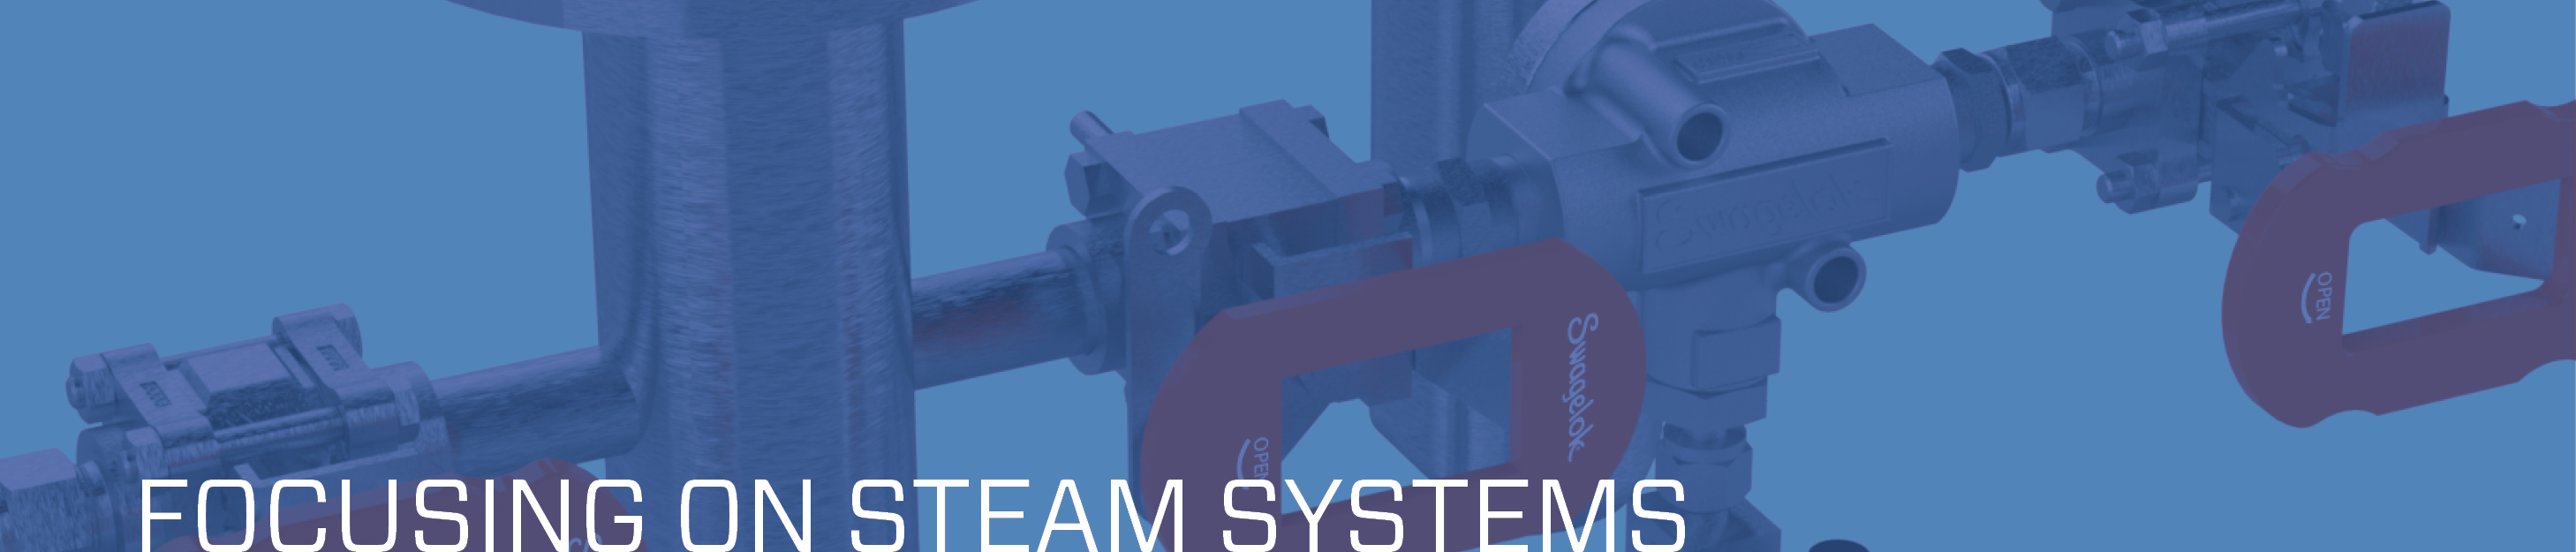 Focusing on Steam Systems